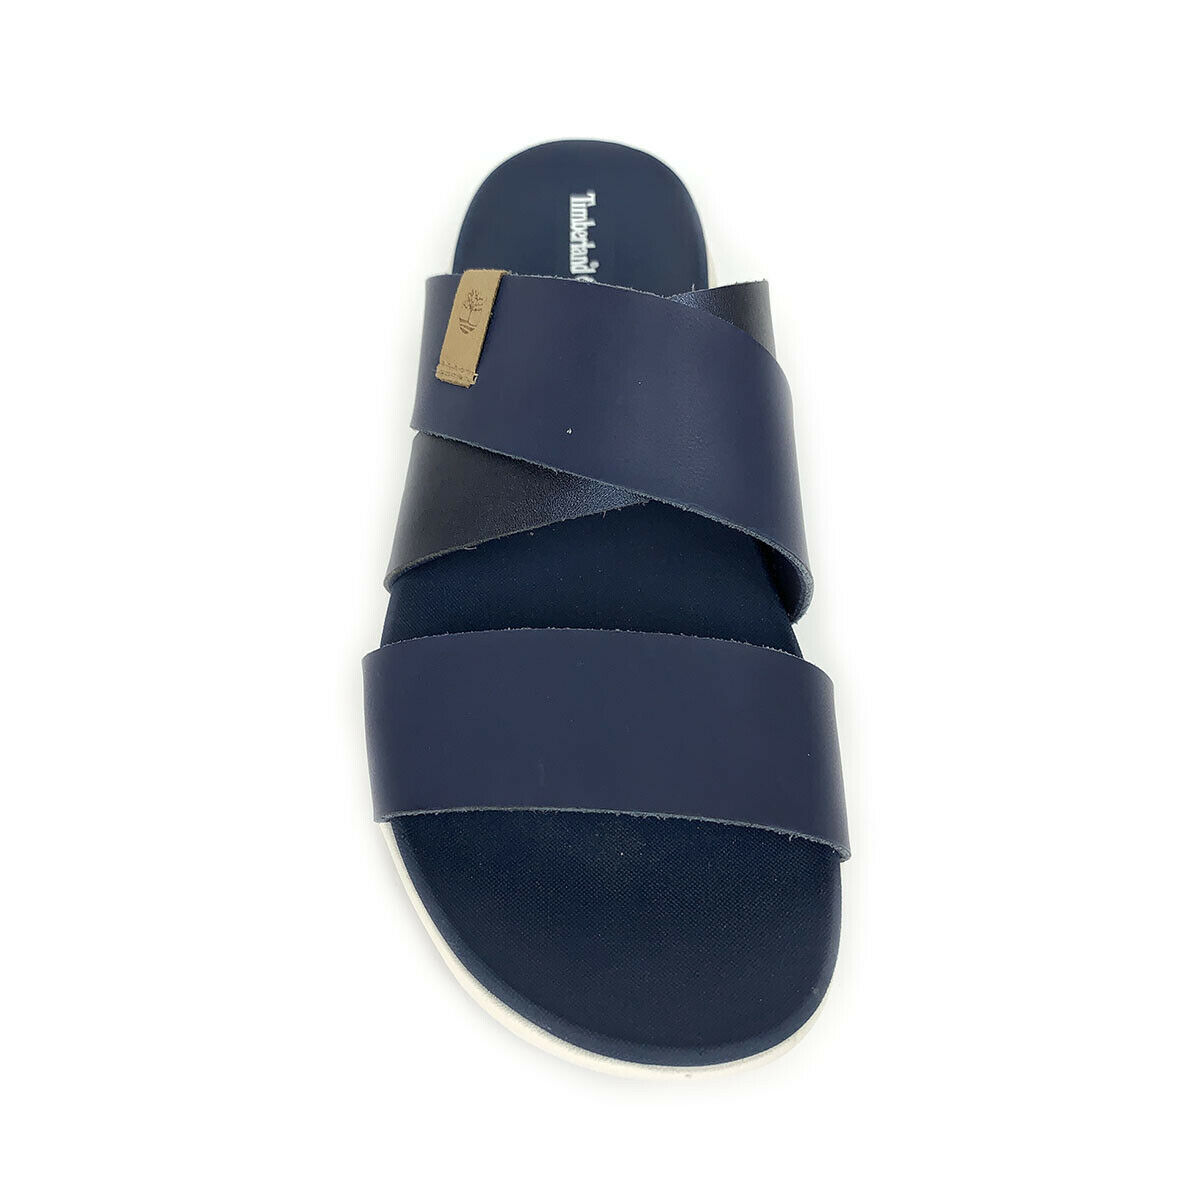 Timberland Women's Wilesport Navy Slip On Sandals A1XPH image 6